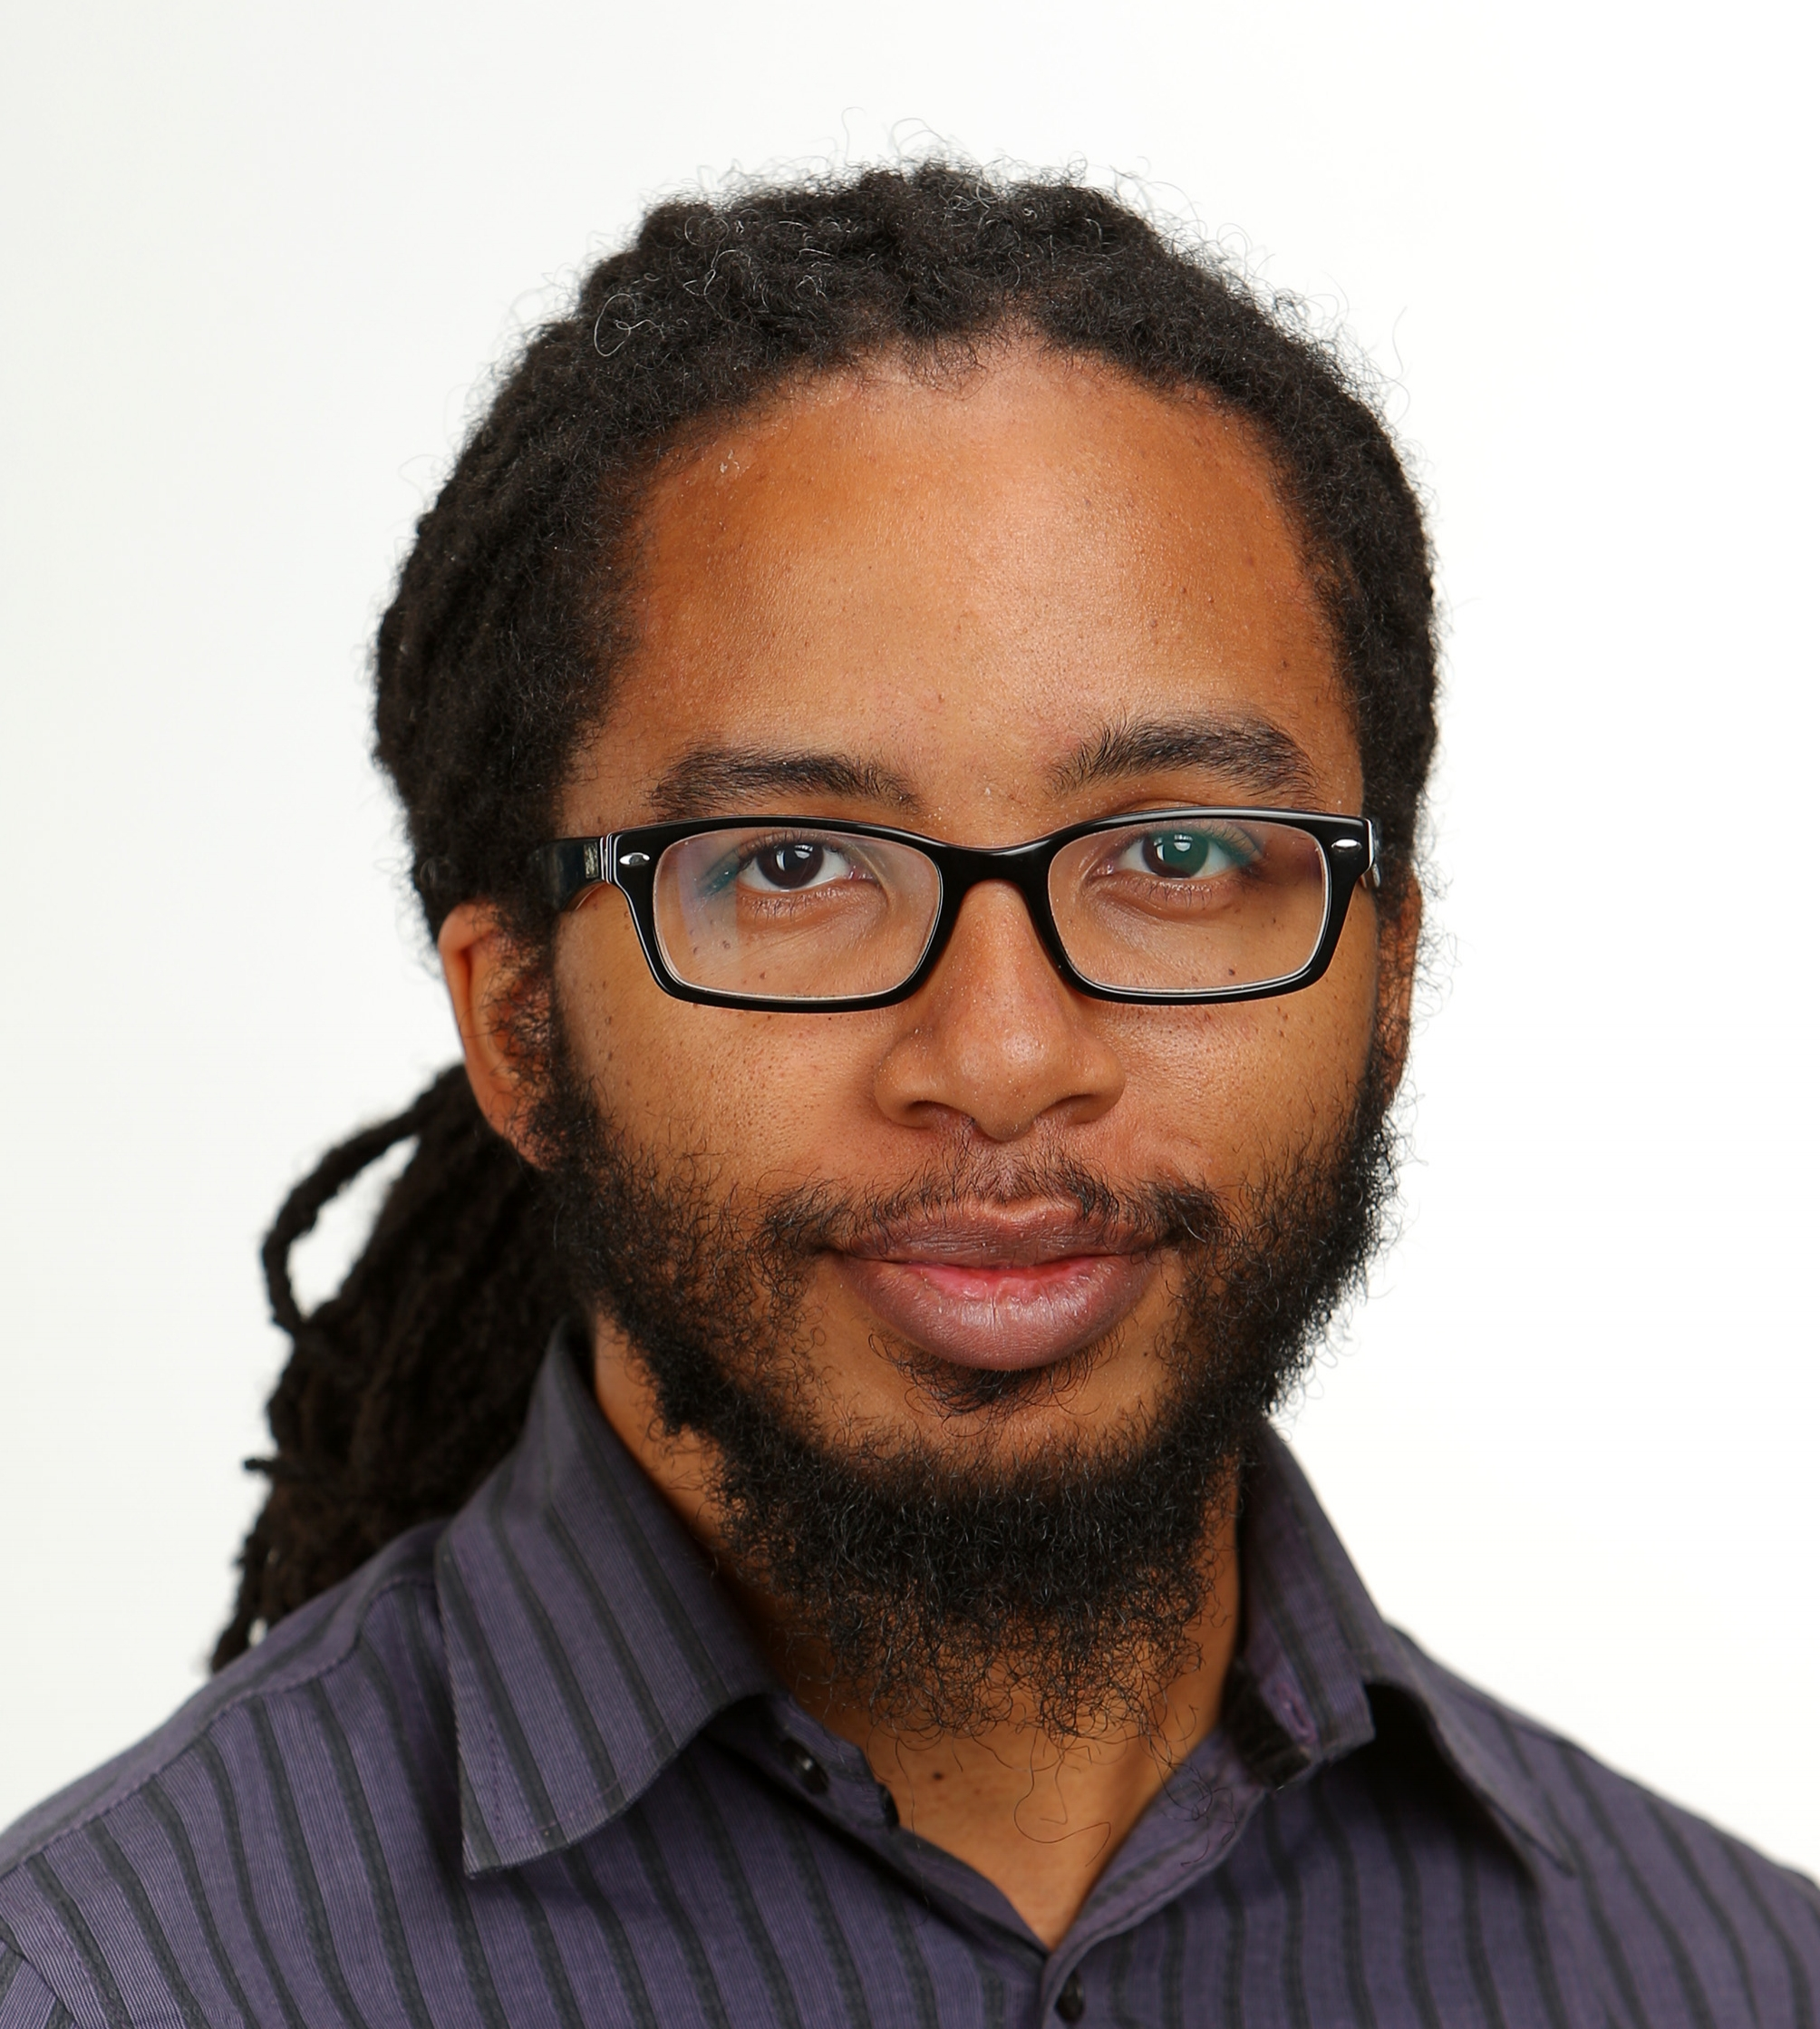 Dr Chike jeffers - Born in 1982 to Francis and Denise Jeffers, I grew up going to ACHA and stayed involved with the program until the early 2000s. I graduated from York University in 2004 and moved to Chicago to pursue my Ph.D at Northwestern University in Philosophy. I received my Ph.D in 2010, the same year I moved to Halifax, where I am now an associate professor in the Department of Philosophy at Dalhousie University.